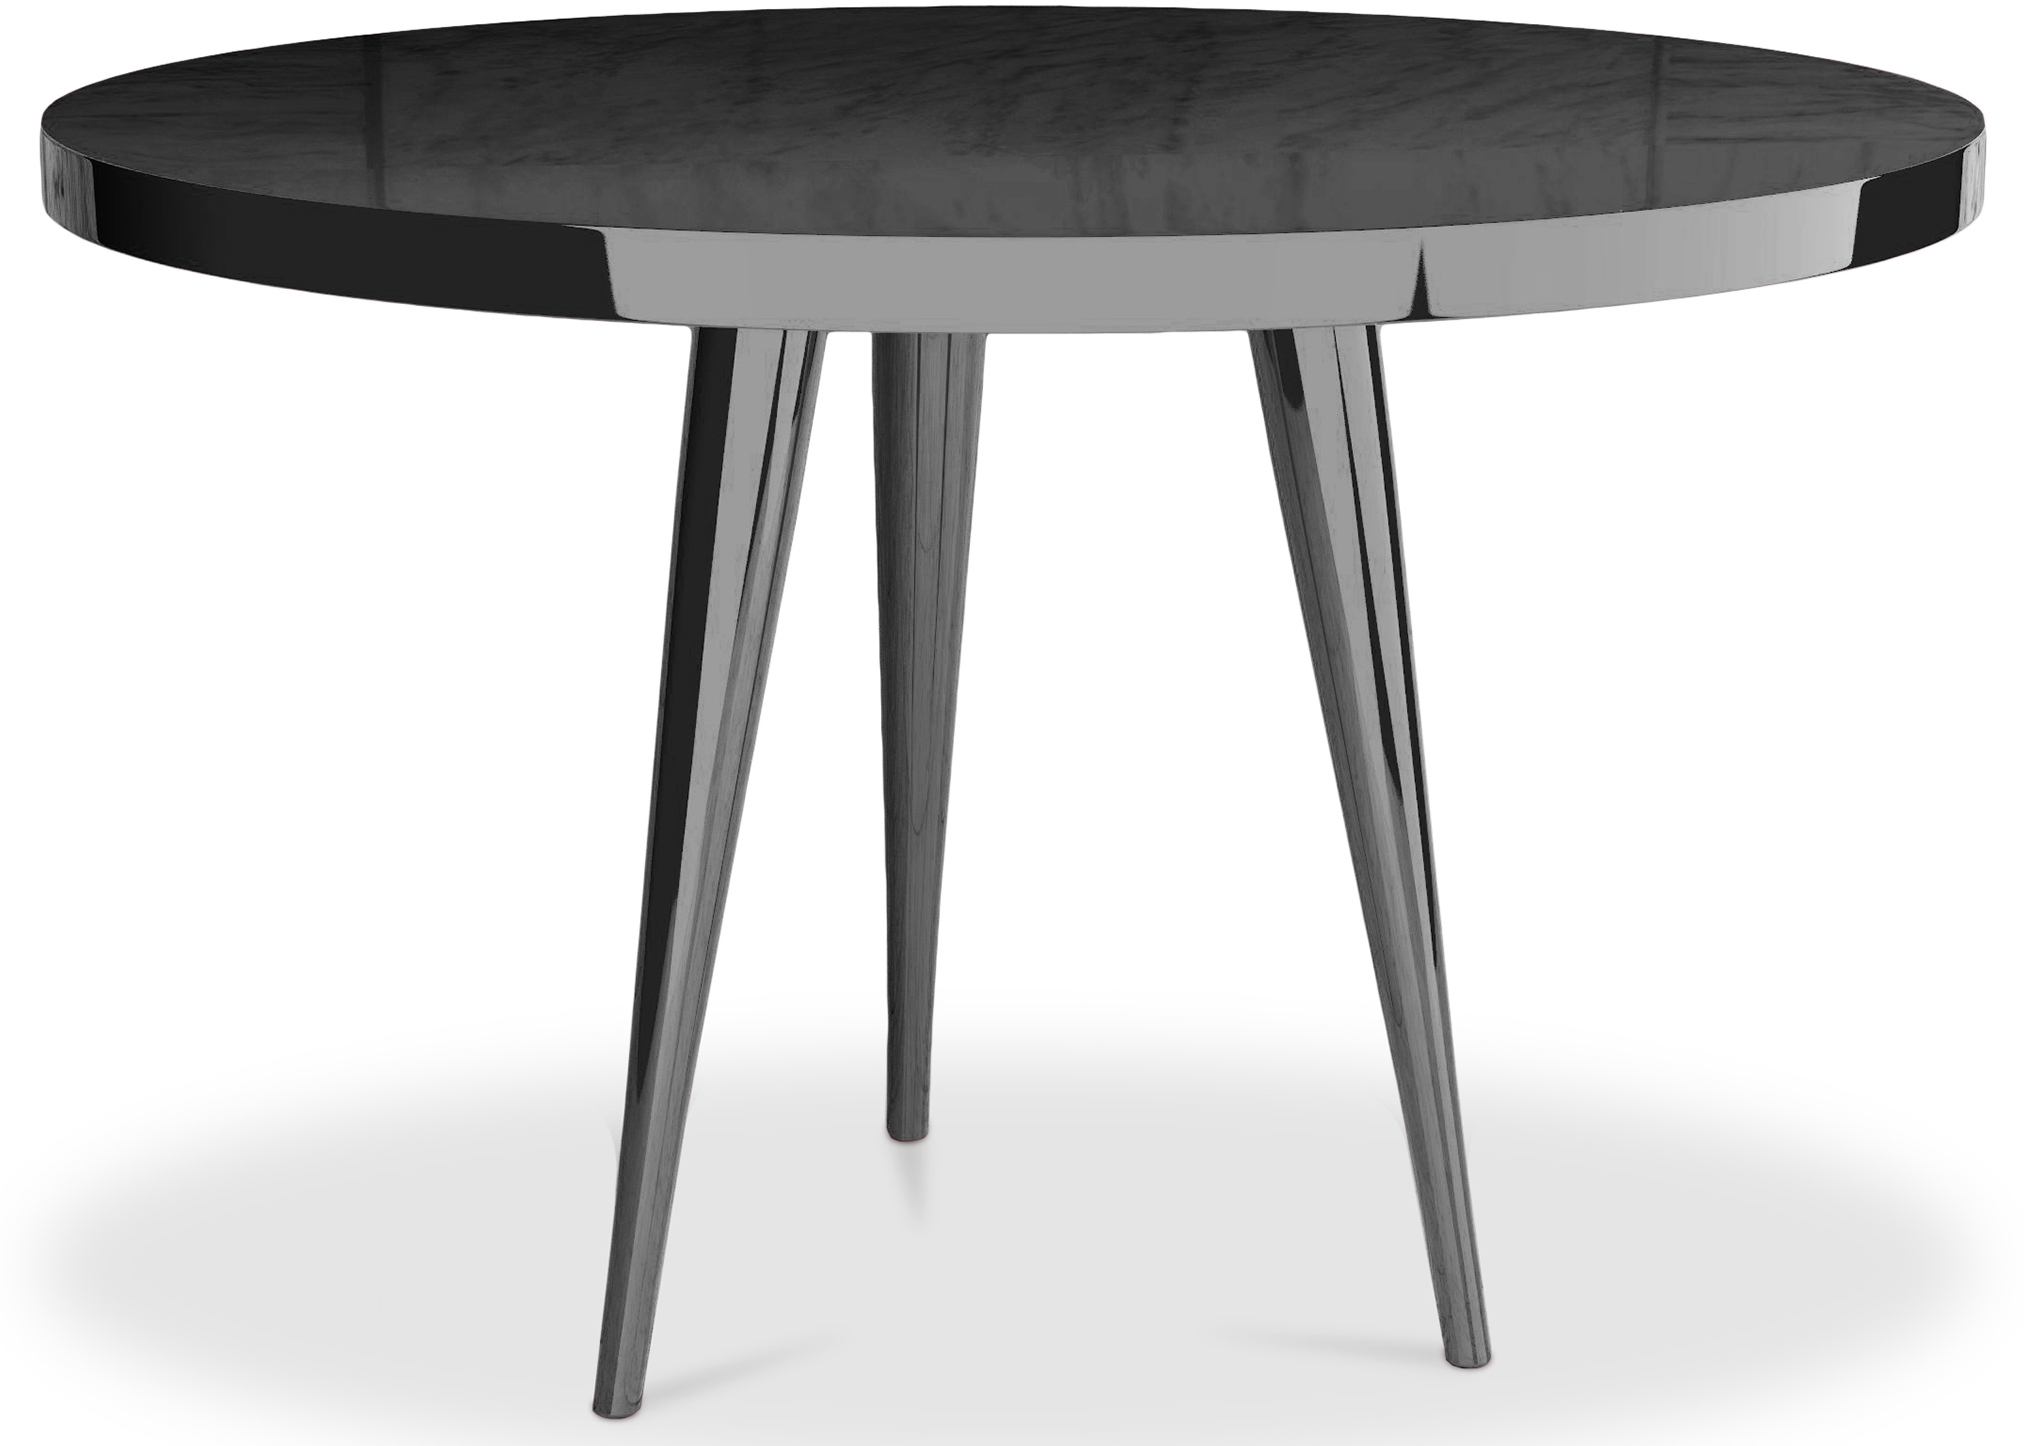 Table ronde haute qualit laqu noir kare - Table a manger noire ...